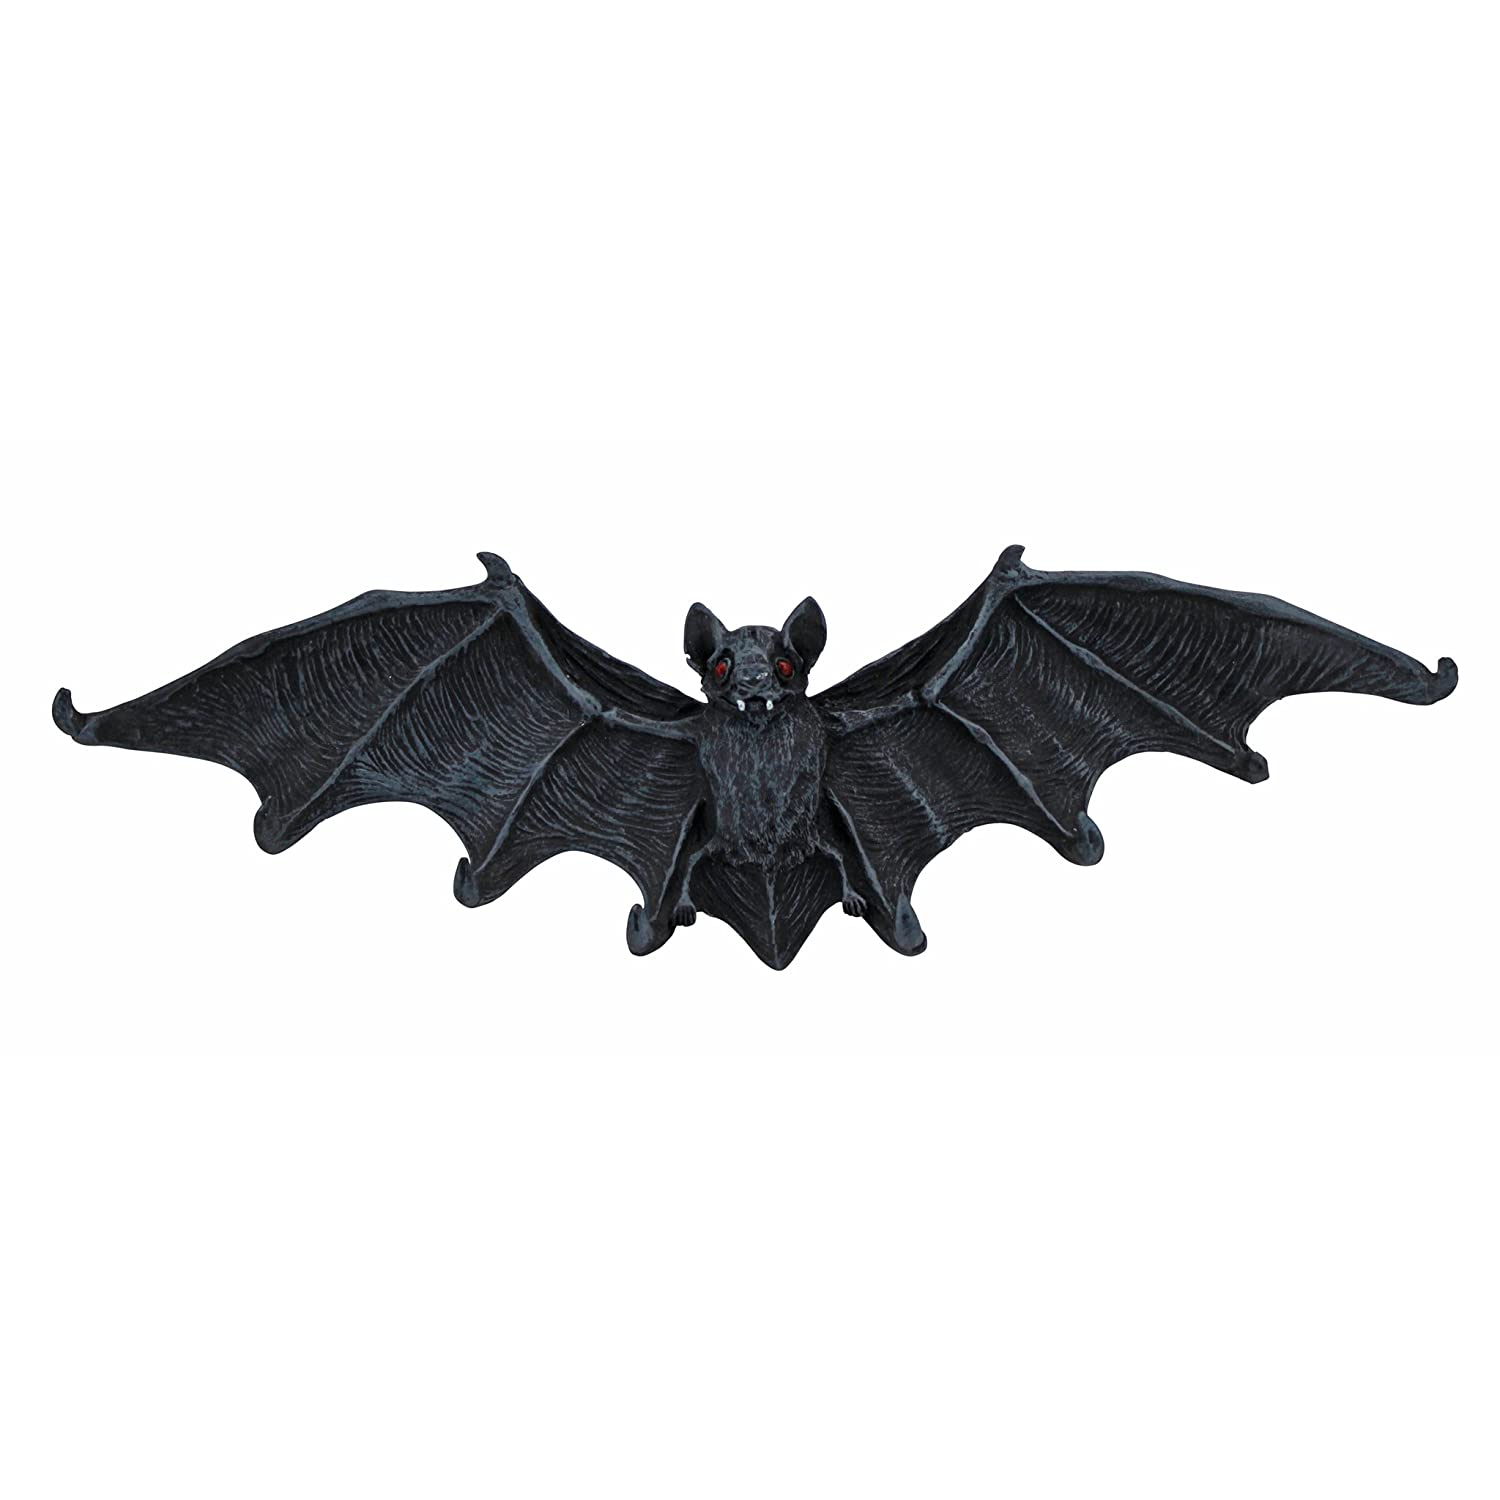 Design Toscano Key Hook Rack - Vampire Bat Key Holder Wall Sculpture: Large - Bat Figure - Halloween Bats CL5847-Parent